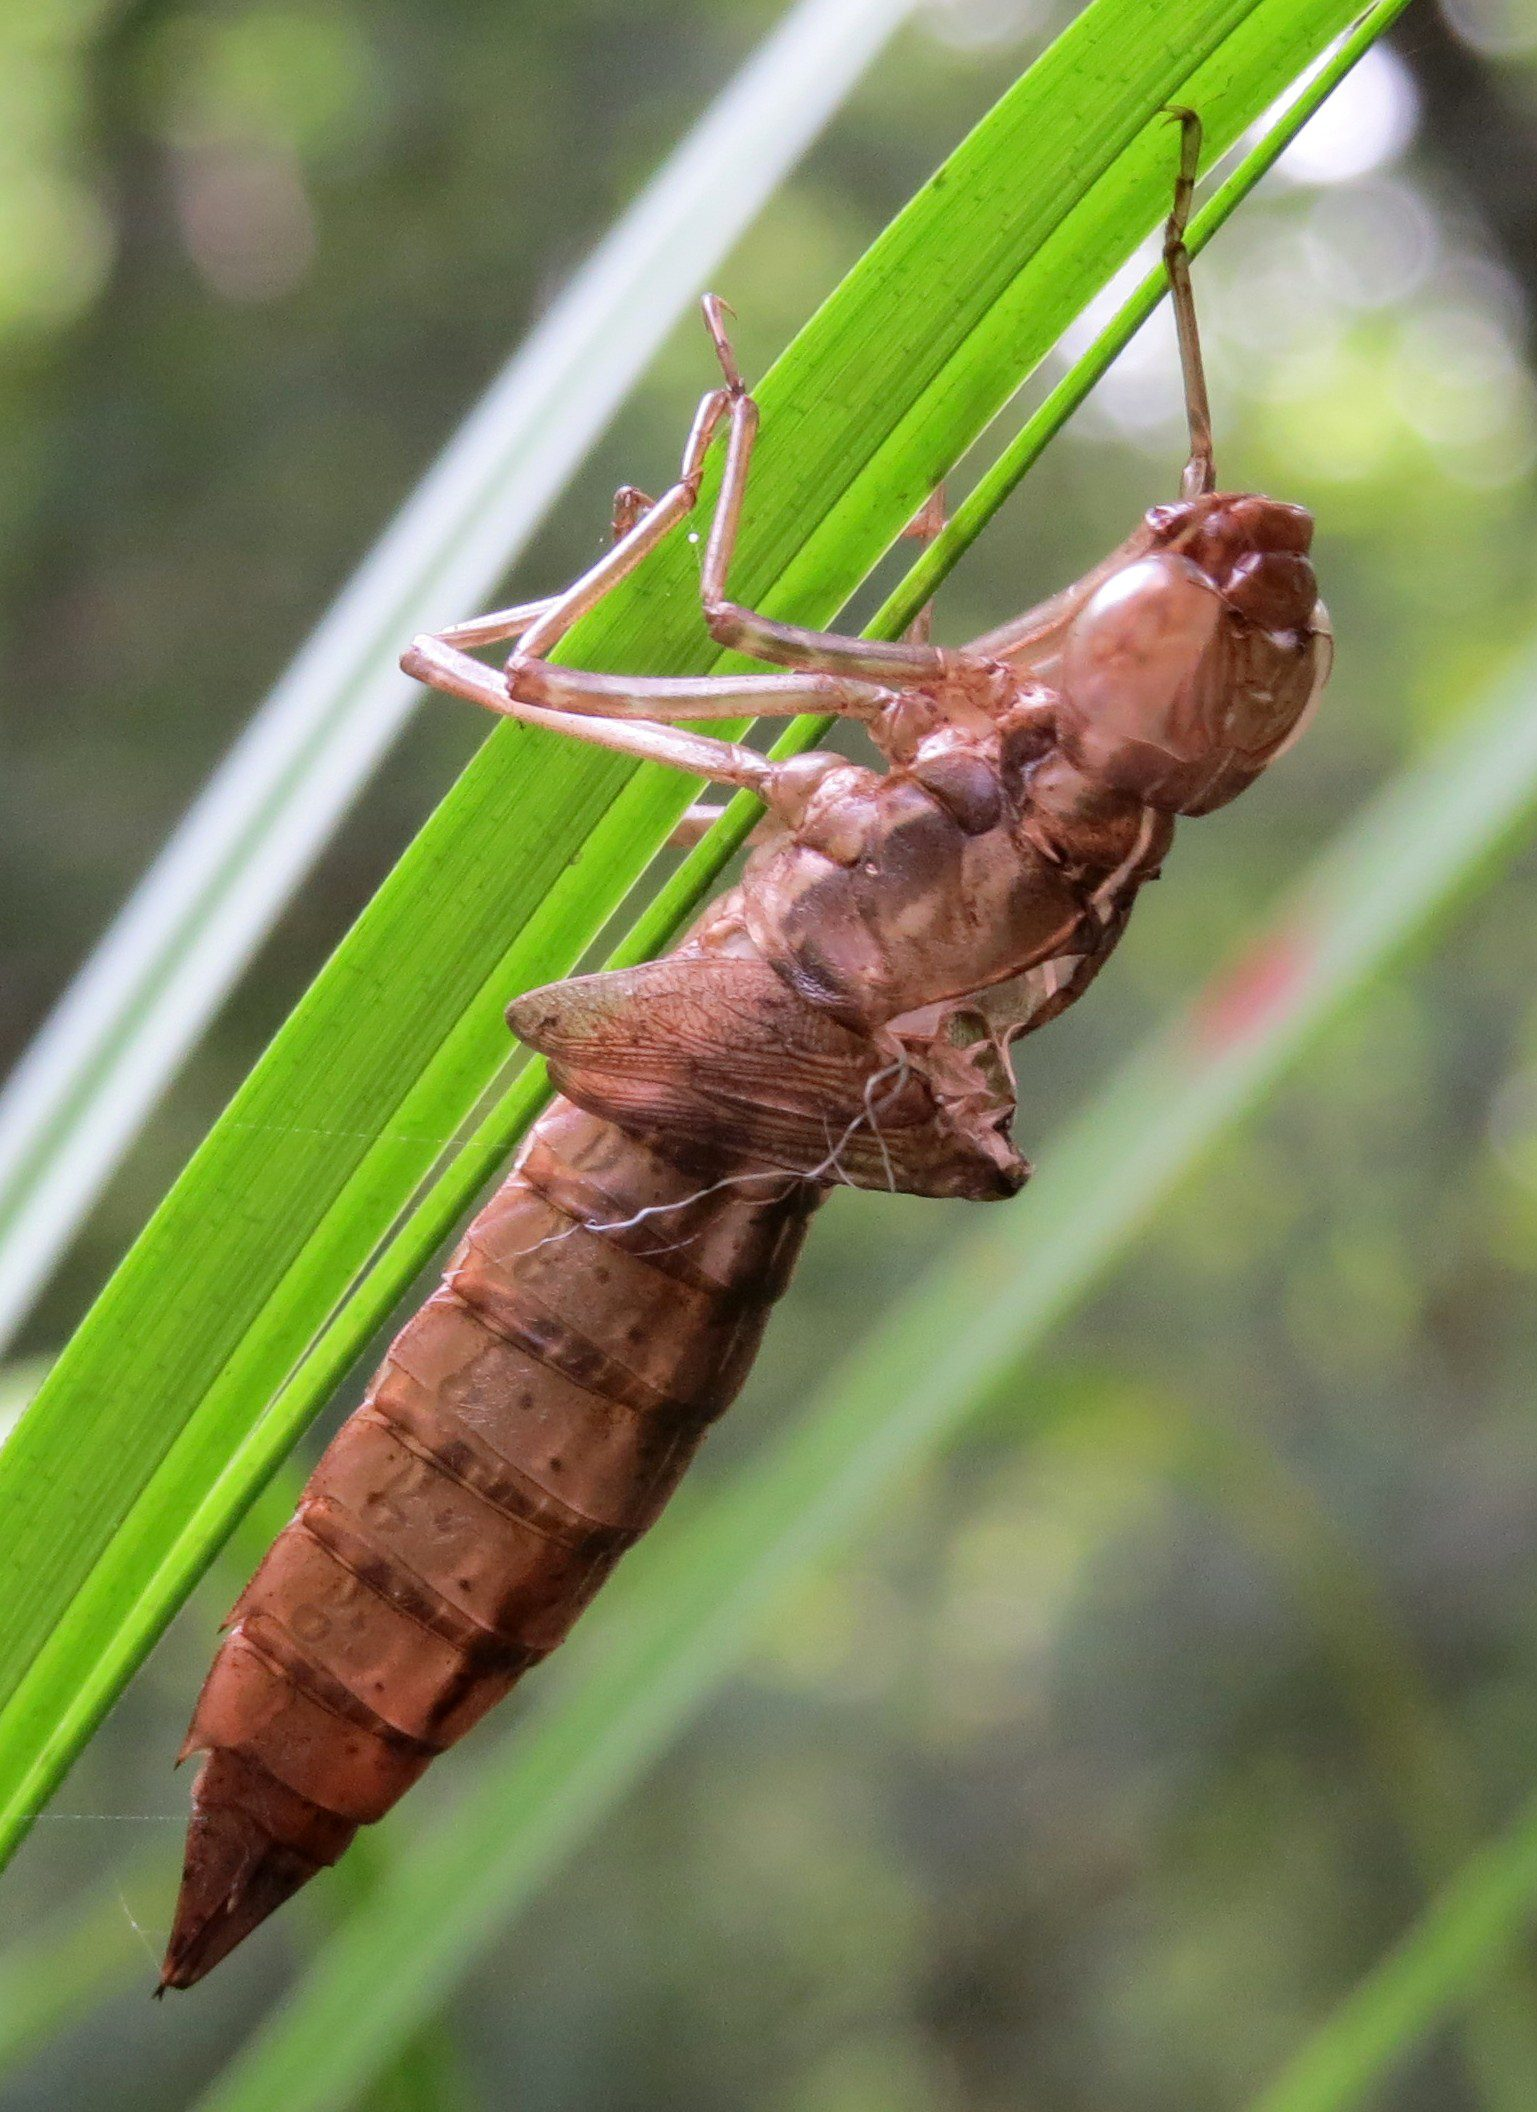 Here is a skin of a dragonfly that had emerged recently from a small wetland near the Lums Pond Nature Center.  It is kind of like a cicada skin on a tree.  Photo by Joe Sebastiani.